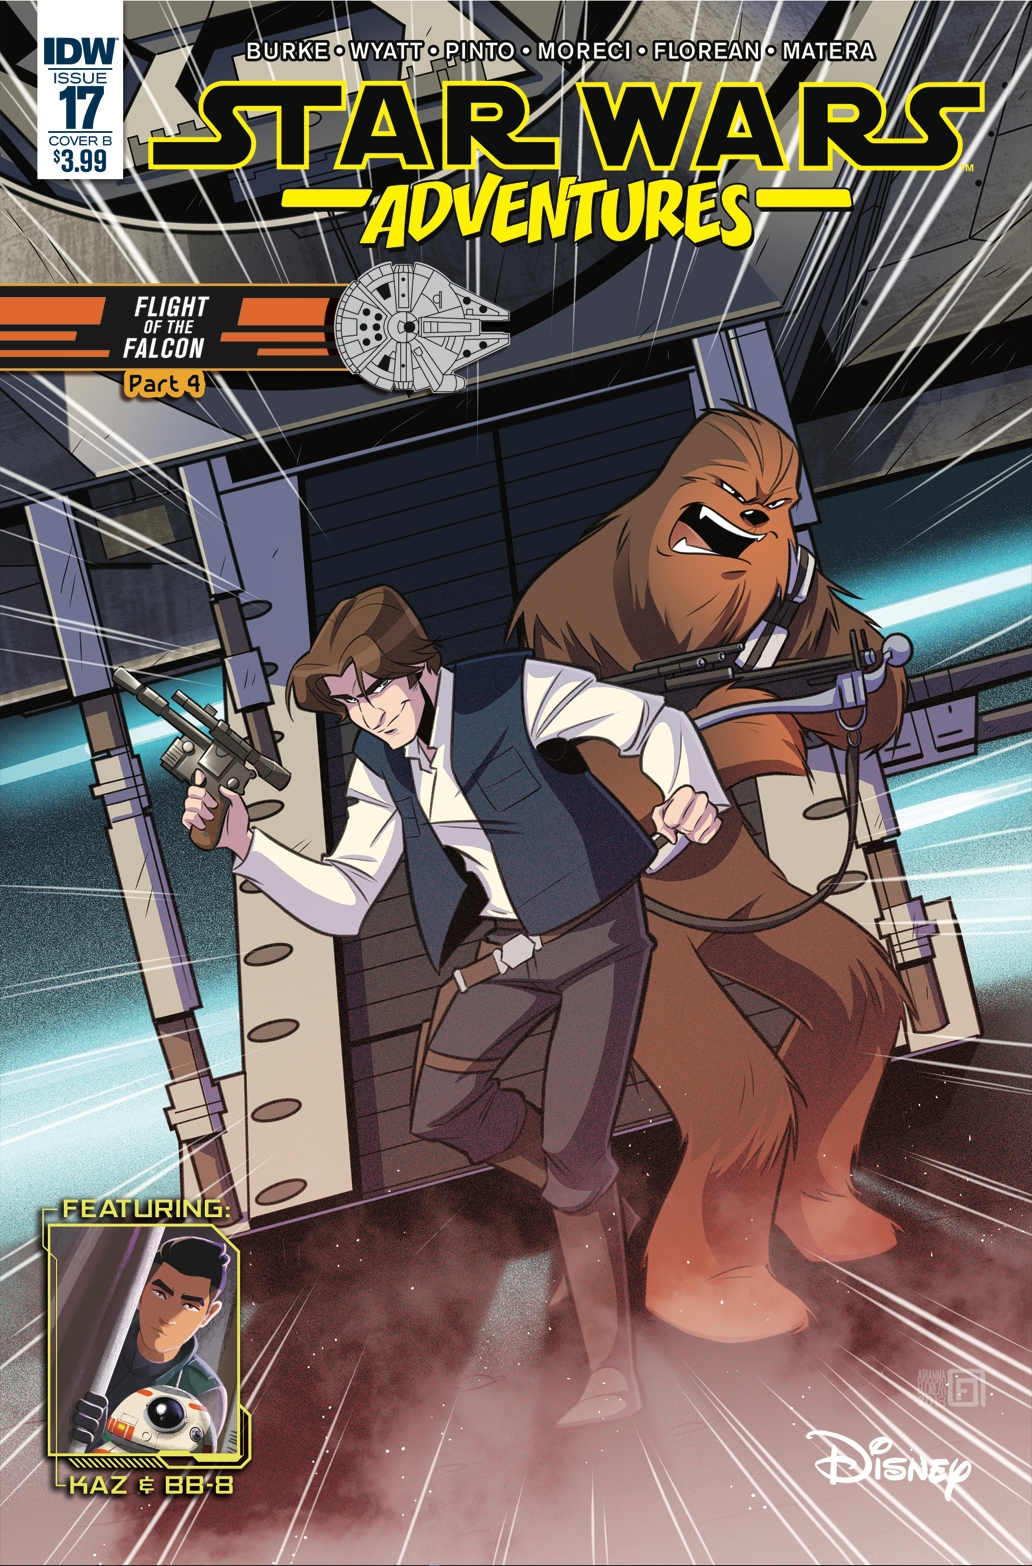 Star Wars Adventures #17 (Cover B by Arianna Florean) (30.01.2019)